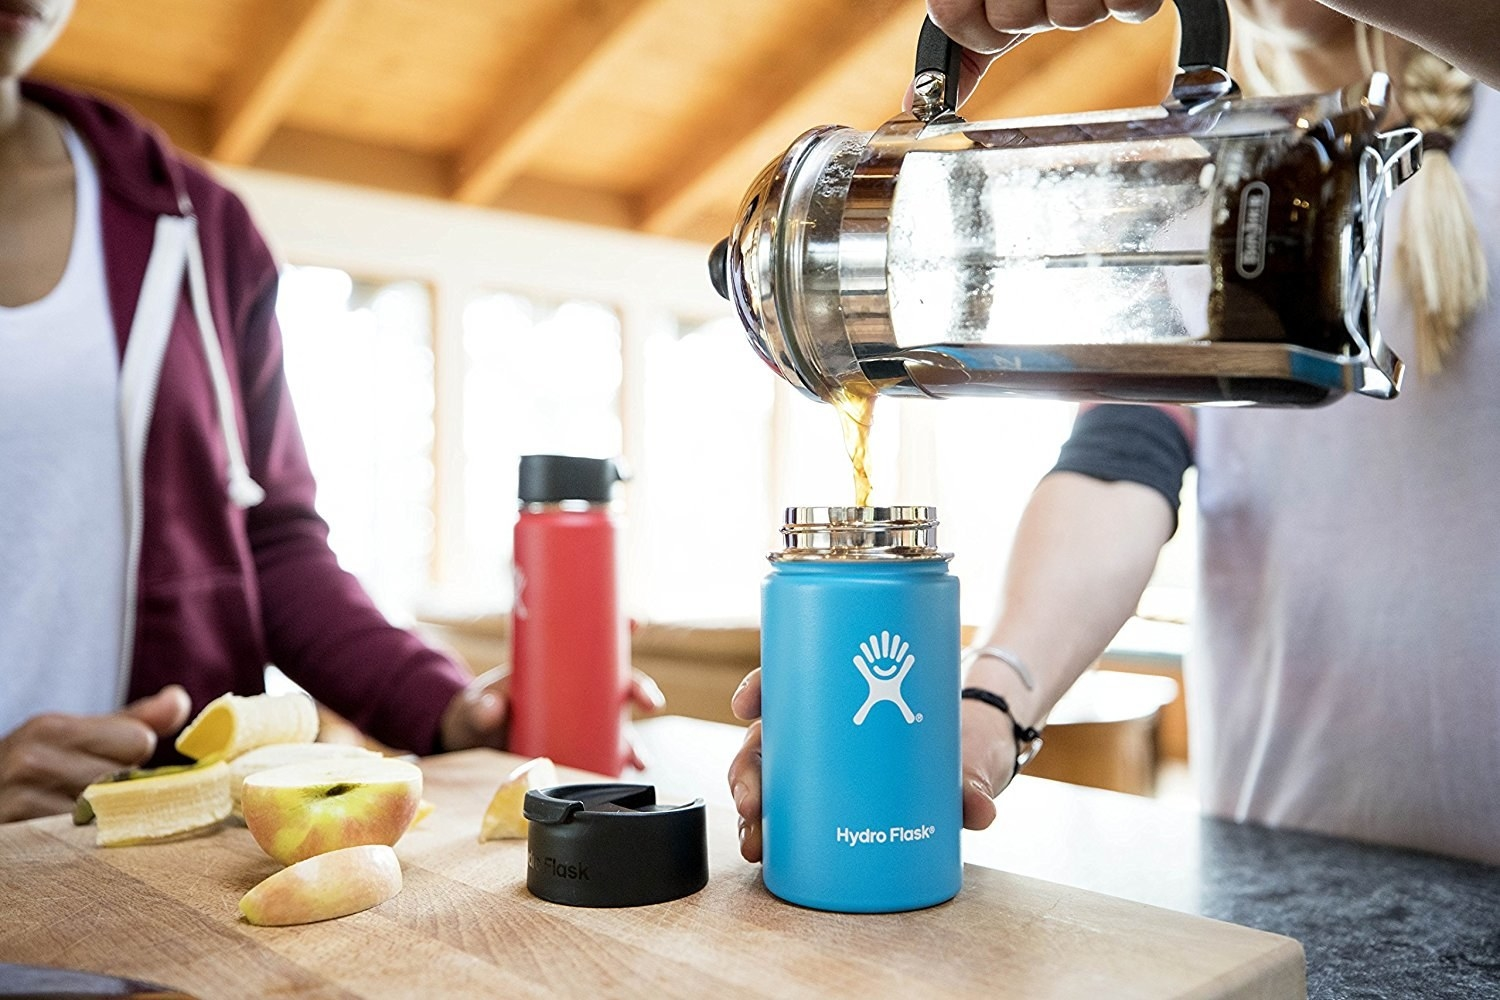 """This flask features TempShield which is a double wall, vacuum insulated technology to maintain the temperature of your coffee. """"I use an awesome travel mug for my tea that keeps stuff warm all night if I make it before I go to bed."""" —joslynw467a594adGet it from Amazon for $21.95+ (available in 18 colors)."""